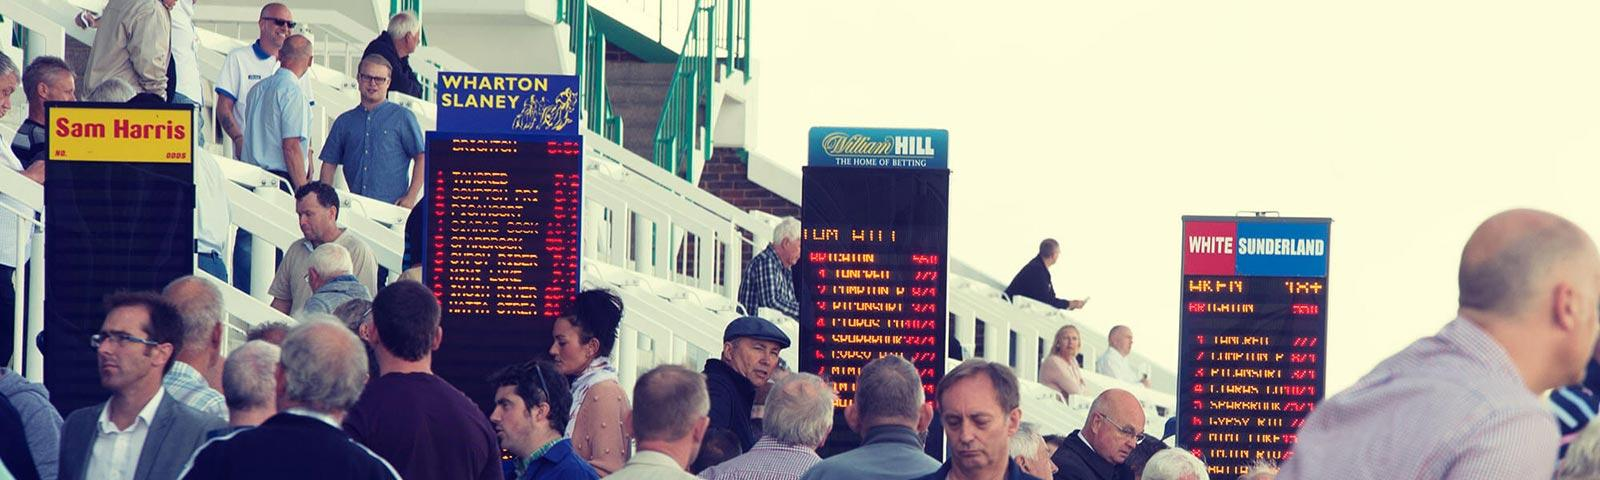 Crowds gathered around bookmakers stands at Brighton Racecourse.